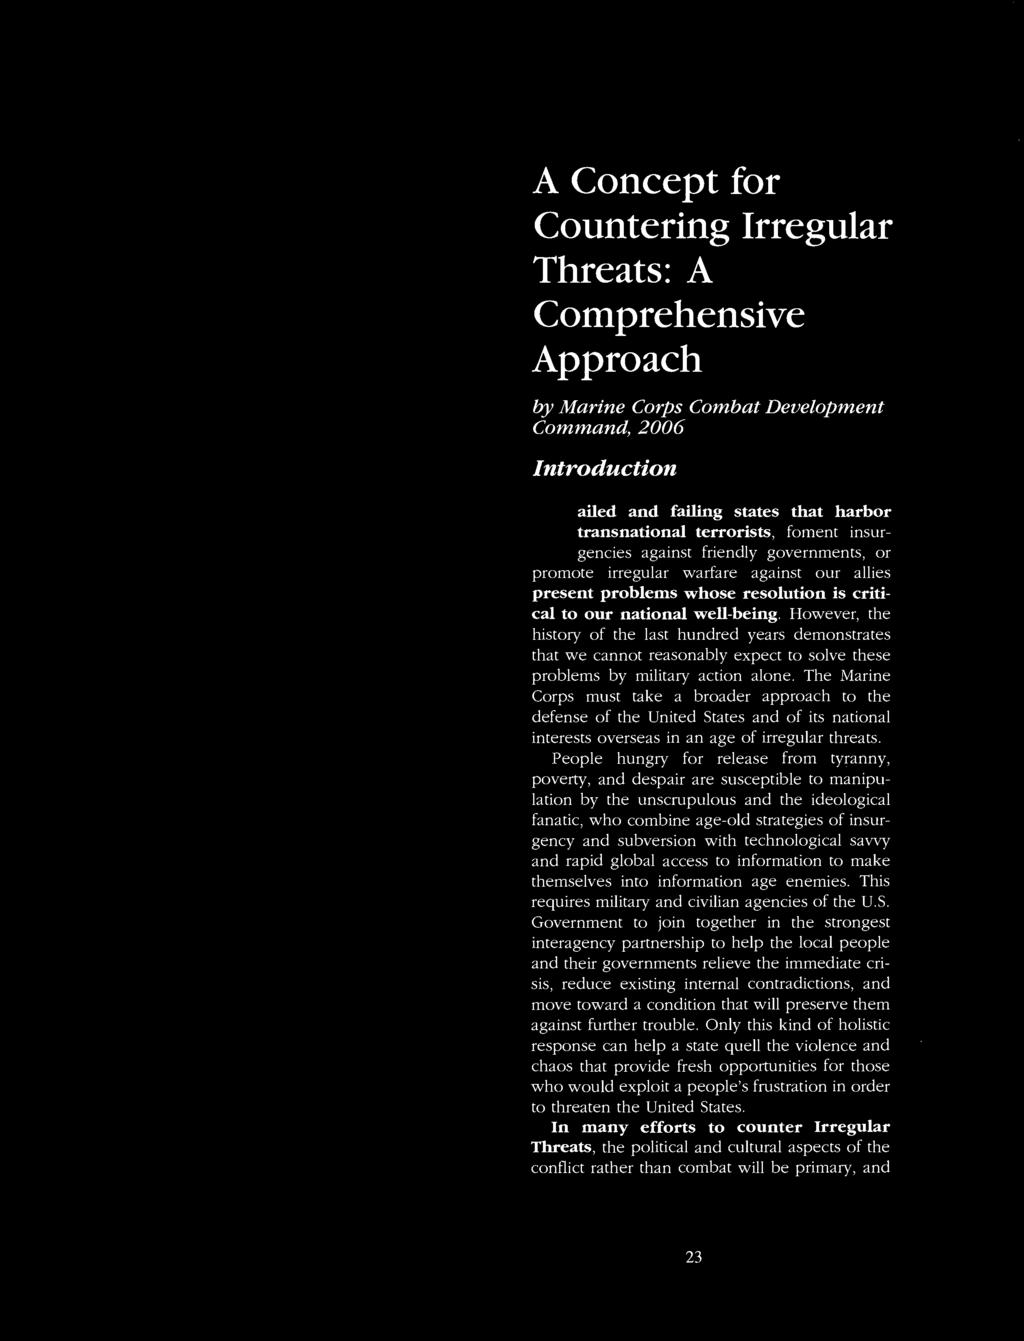 A Concept for Countering Irregular Threats: A Comprehensive Approach by Marine Corps Combat Development Command, 2006 Introduction ailed and failing states that harbor transnational terrorists,